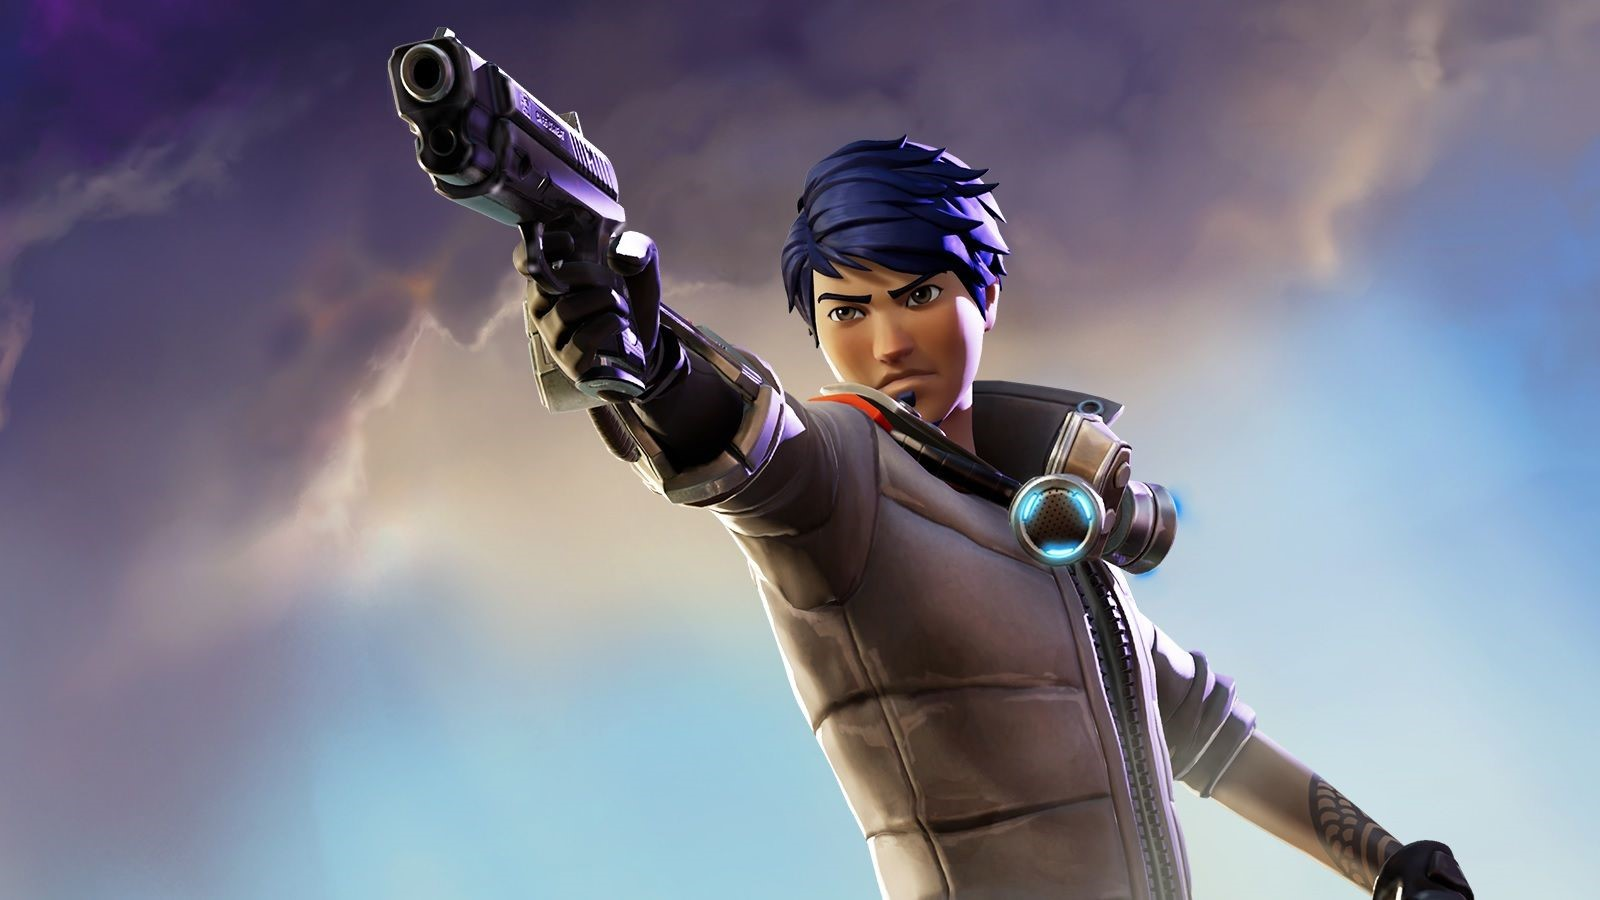 Fortnite Soldier Pictures